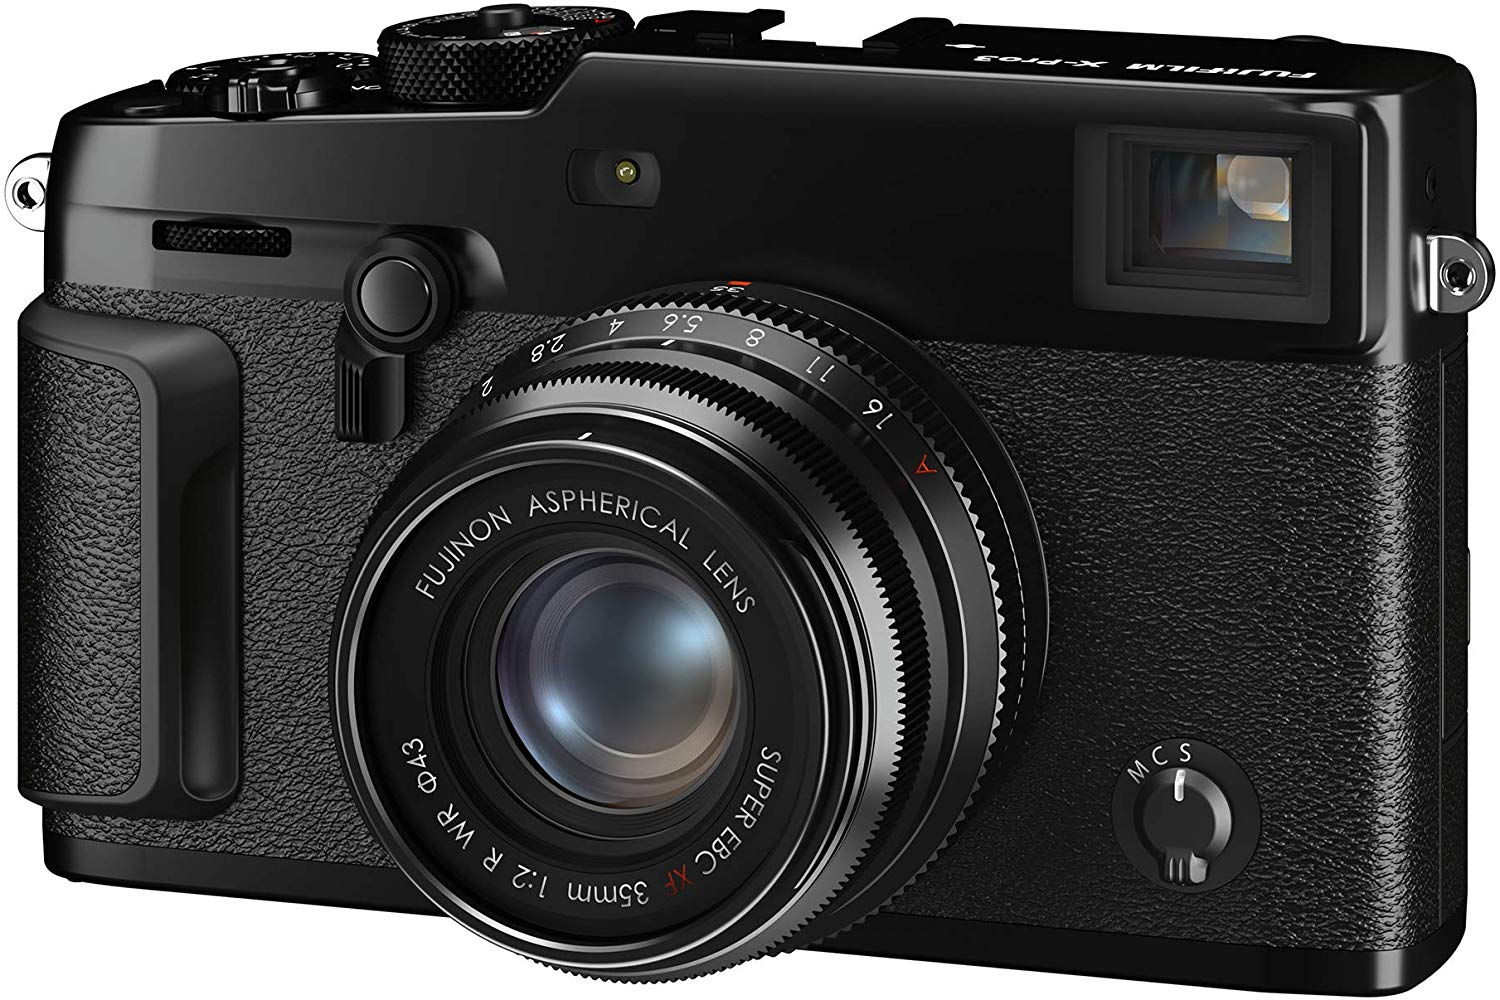 New Firmware Update Ver 1.05 for Fujifilm X-Pro3 Released